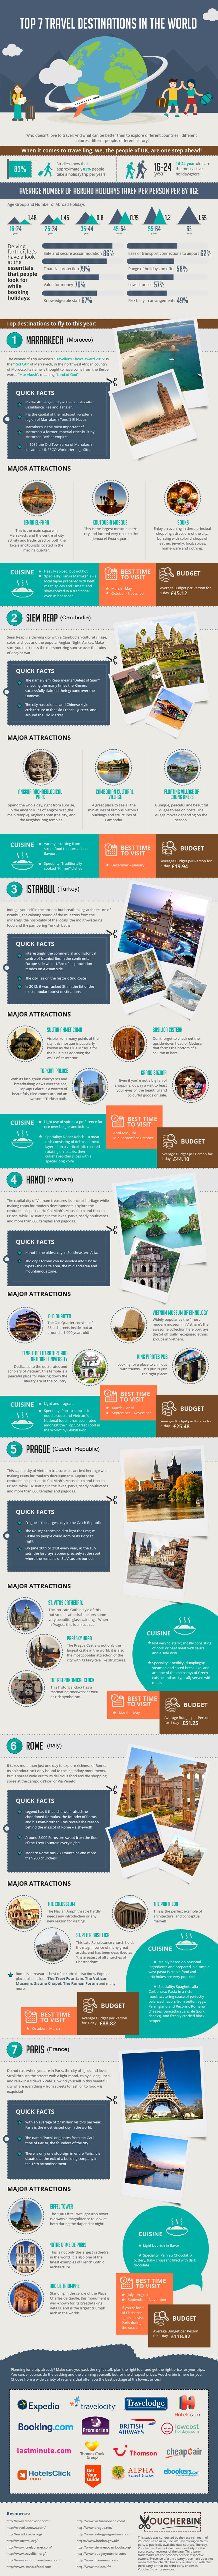 voucherbin-infographic-top-travel-destinations-in-the-world